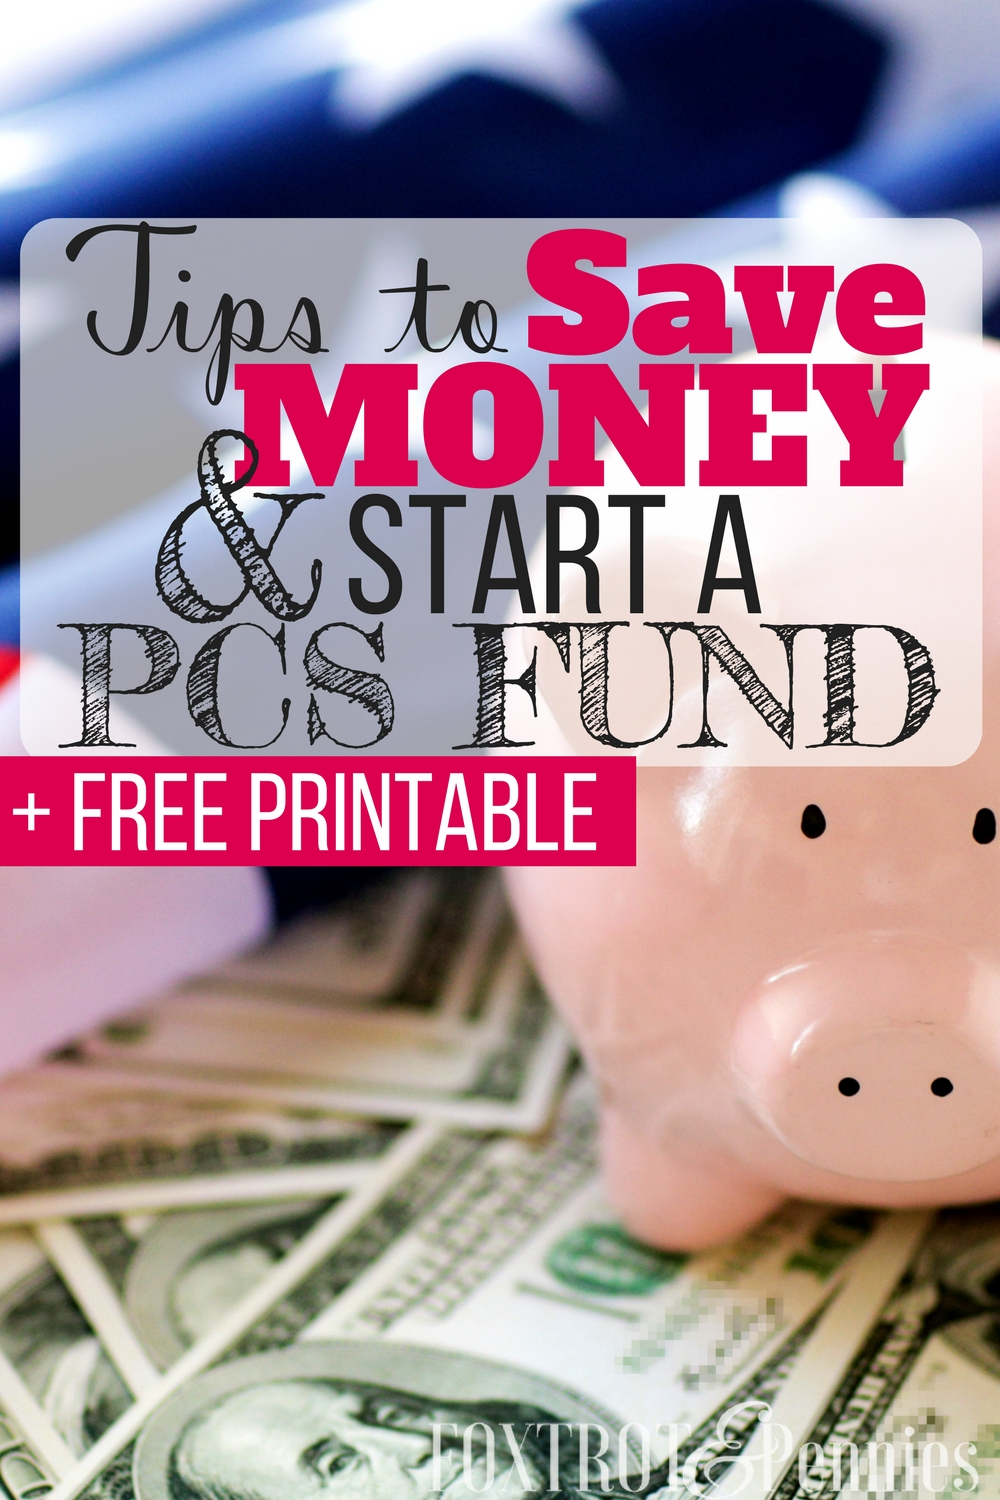 These tips to save money are awesome! I'm so excite to start a PCS fund and boost our savings account. The best part is that these tips are so easy to implement-- i'm terrible at sticking to budgets but this is actually doable!